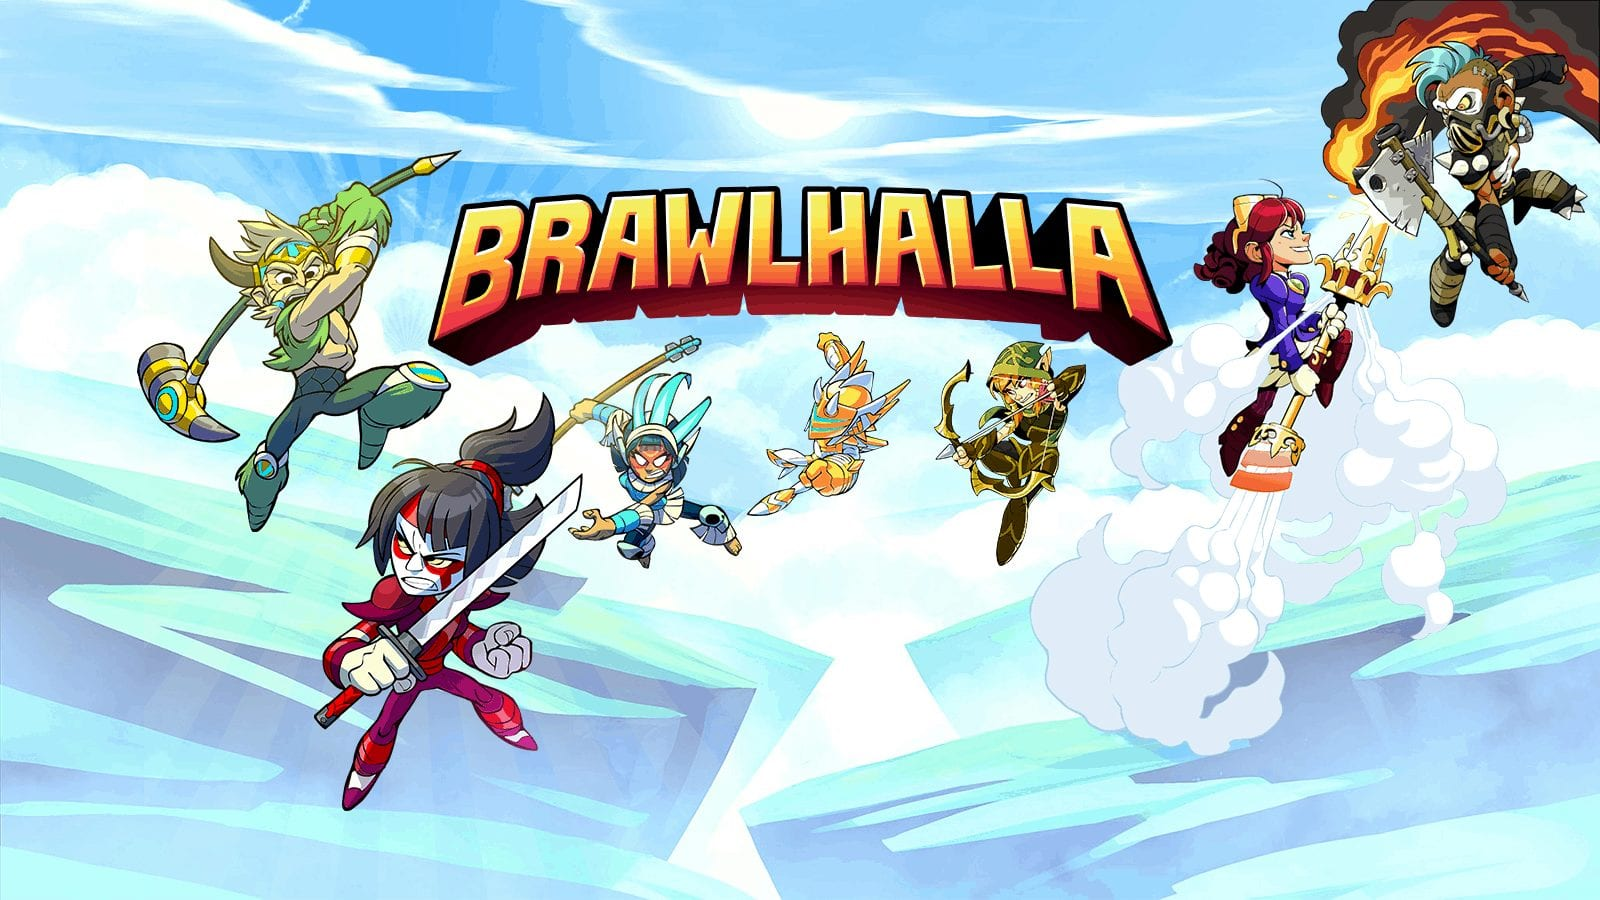 Free-To-Play BRAWLHALLA Now Available On Mobile